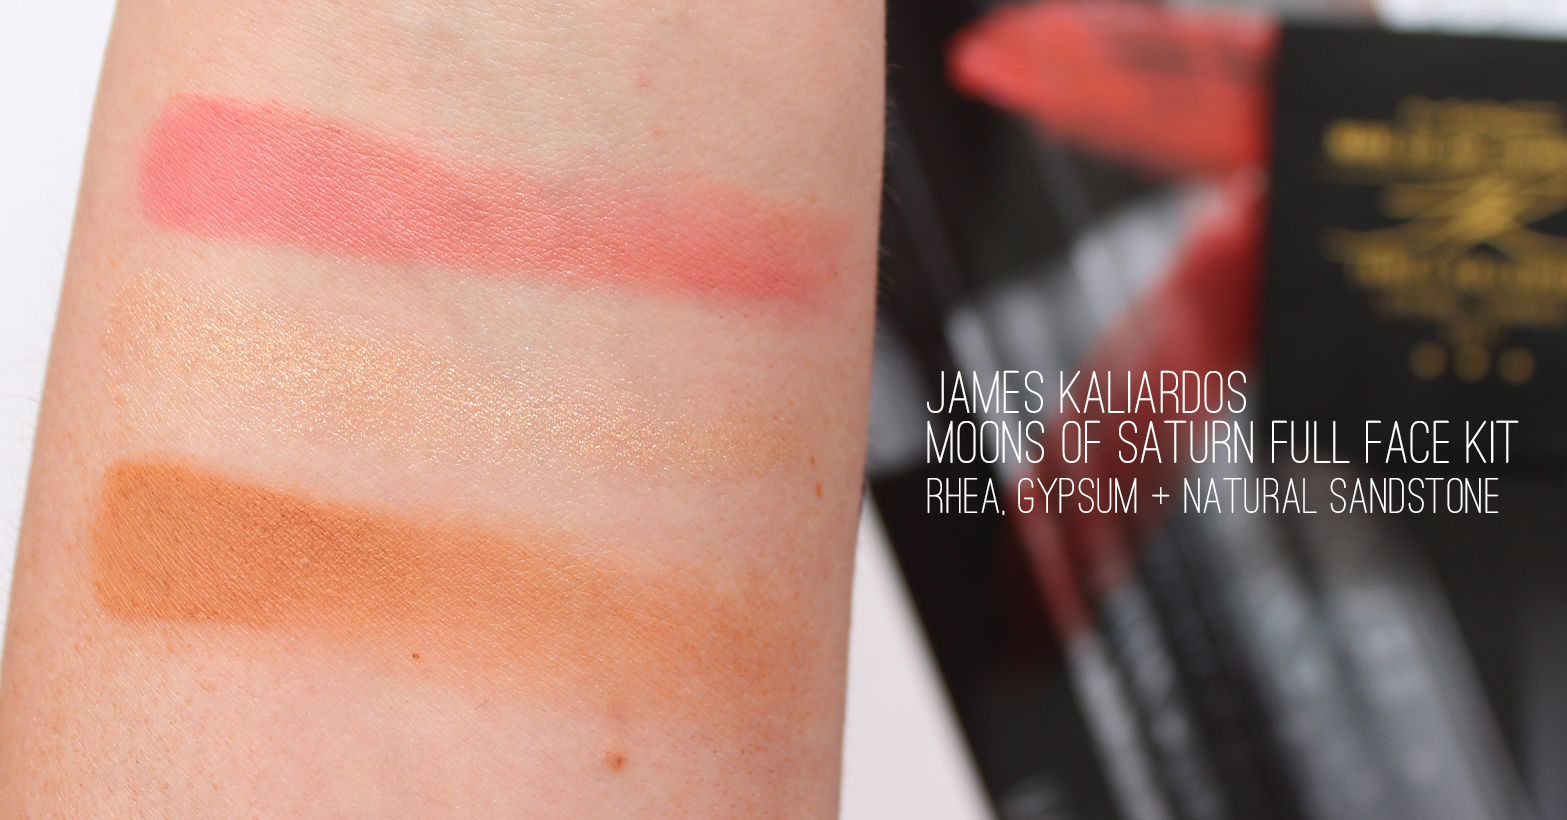 M.A.C | Make Up Art Cosmetics Collection with Kabuki Magic, Diane Kendal + James Kaliardos - Review + Swatches - CassandraMyee